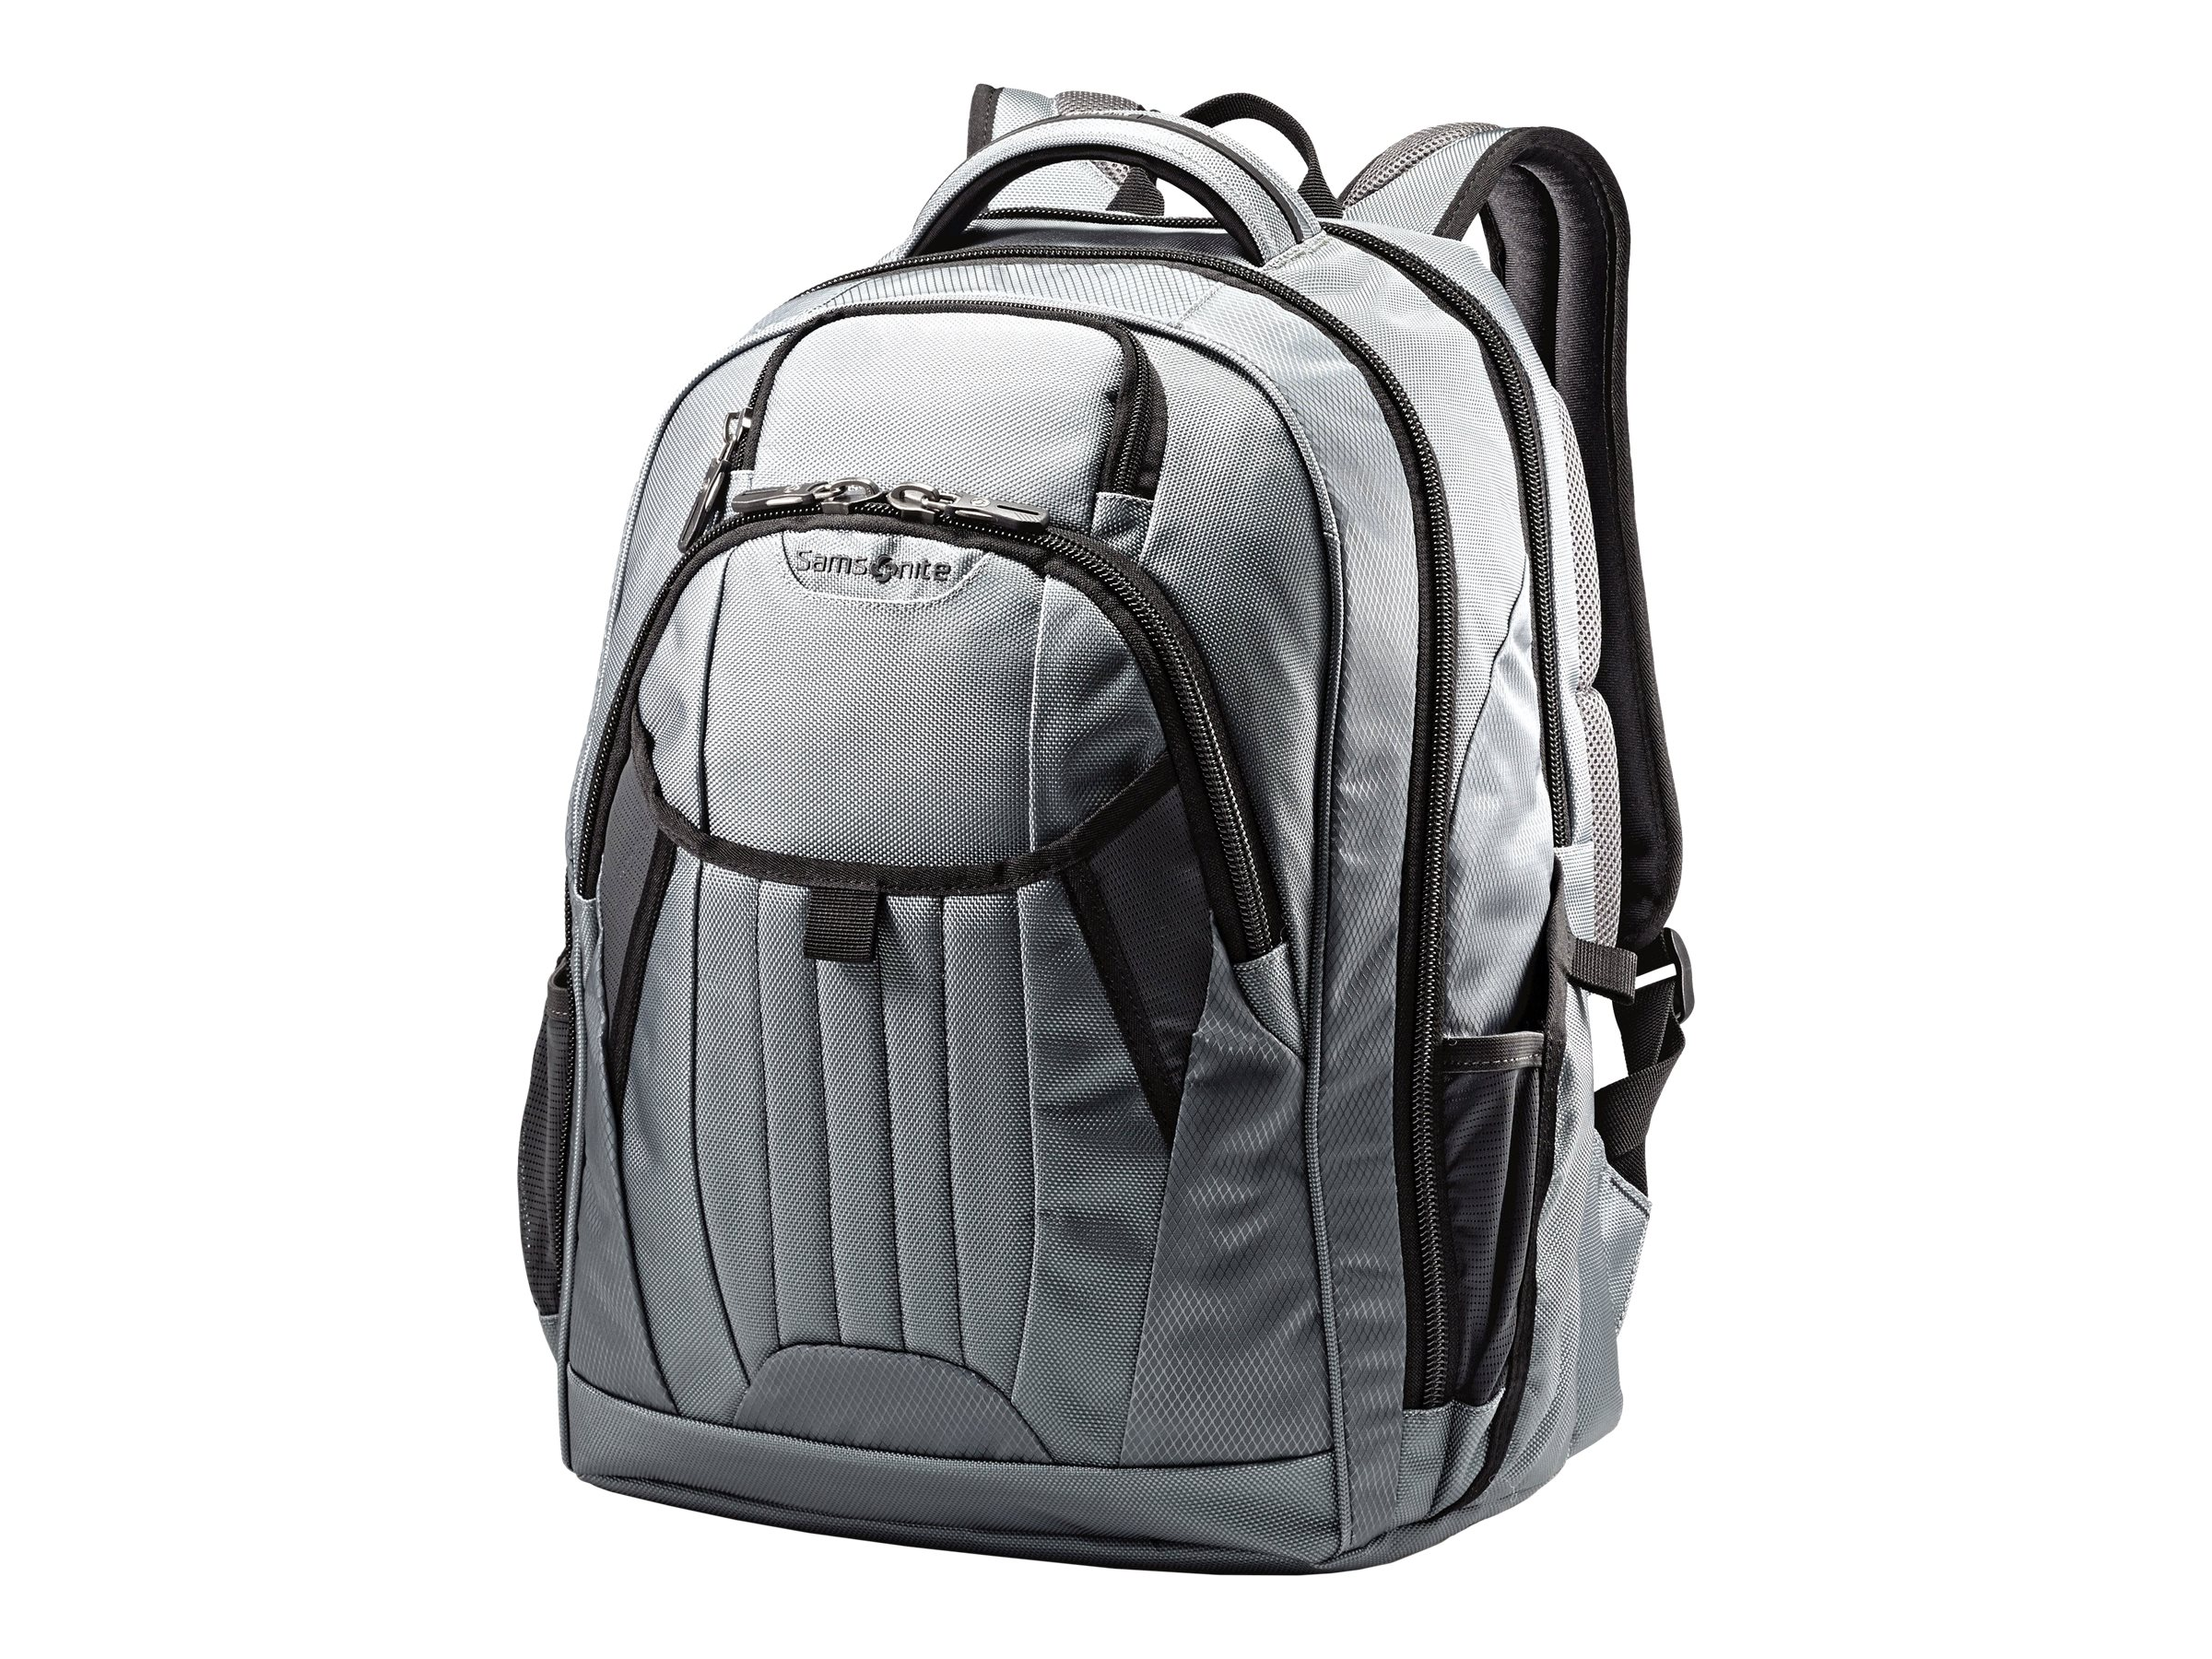 Stephen Gould Tectonic 2 Large Backpack 17, Gray, 66303-1408